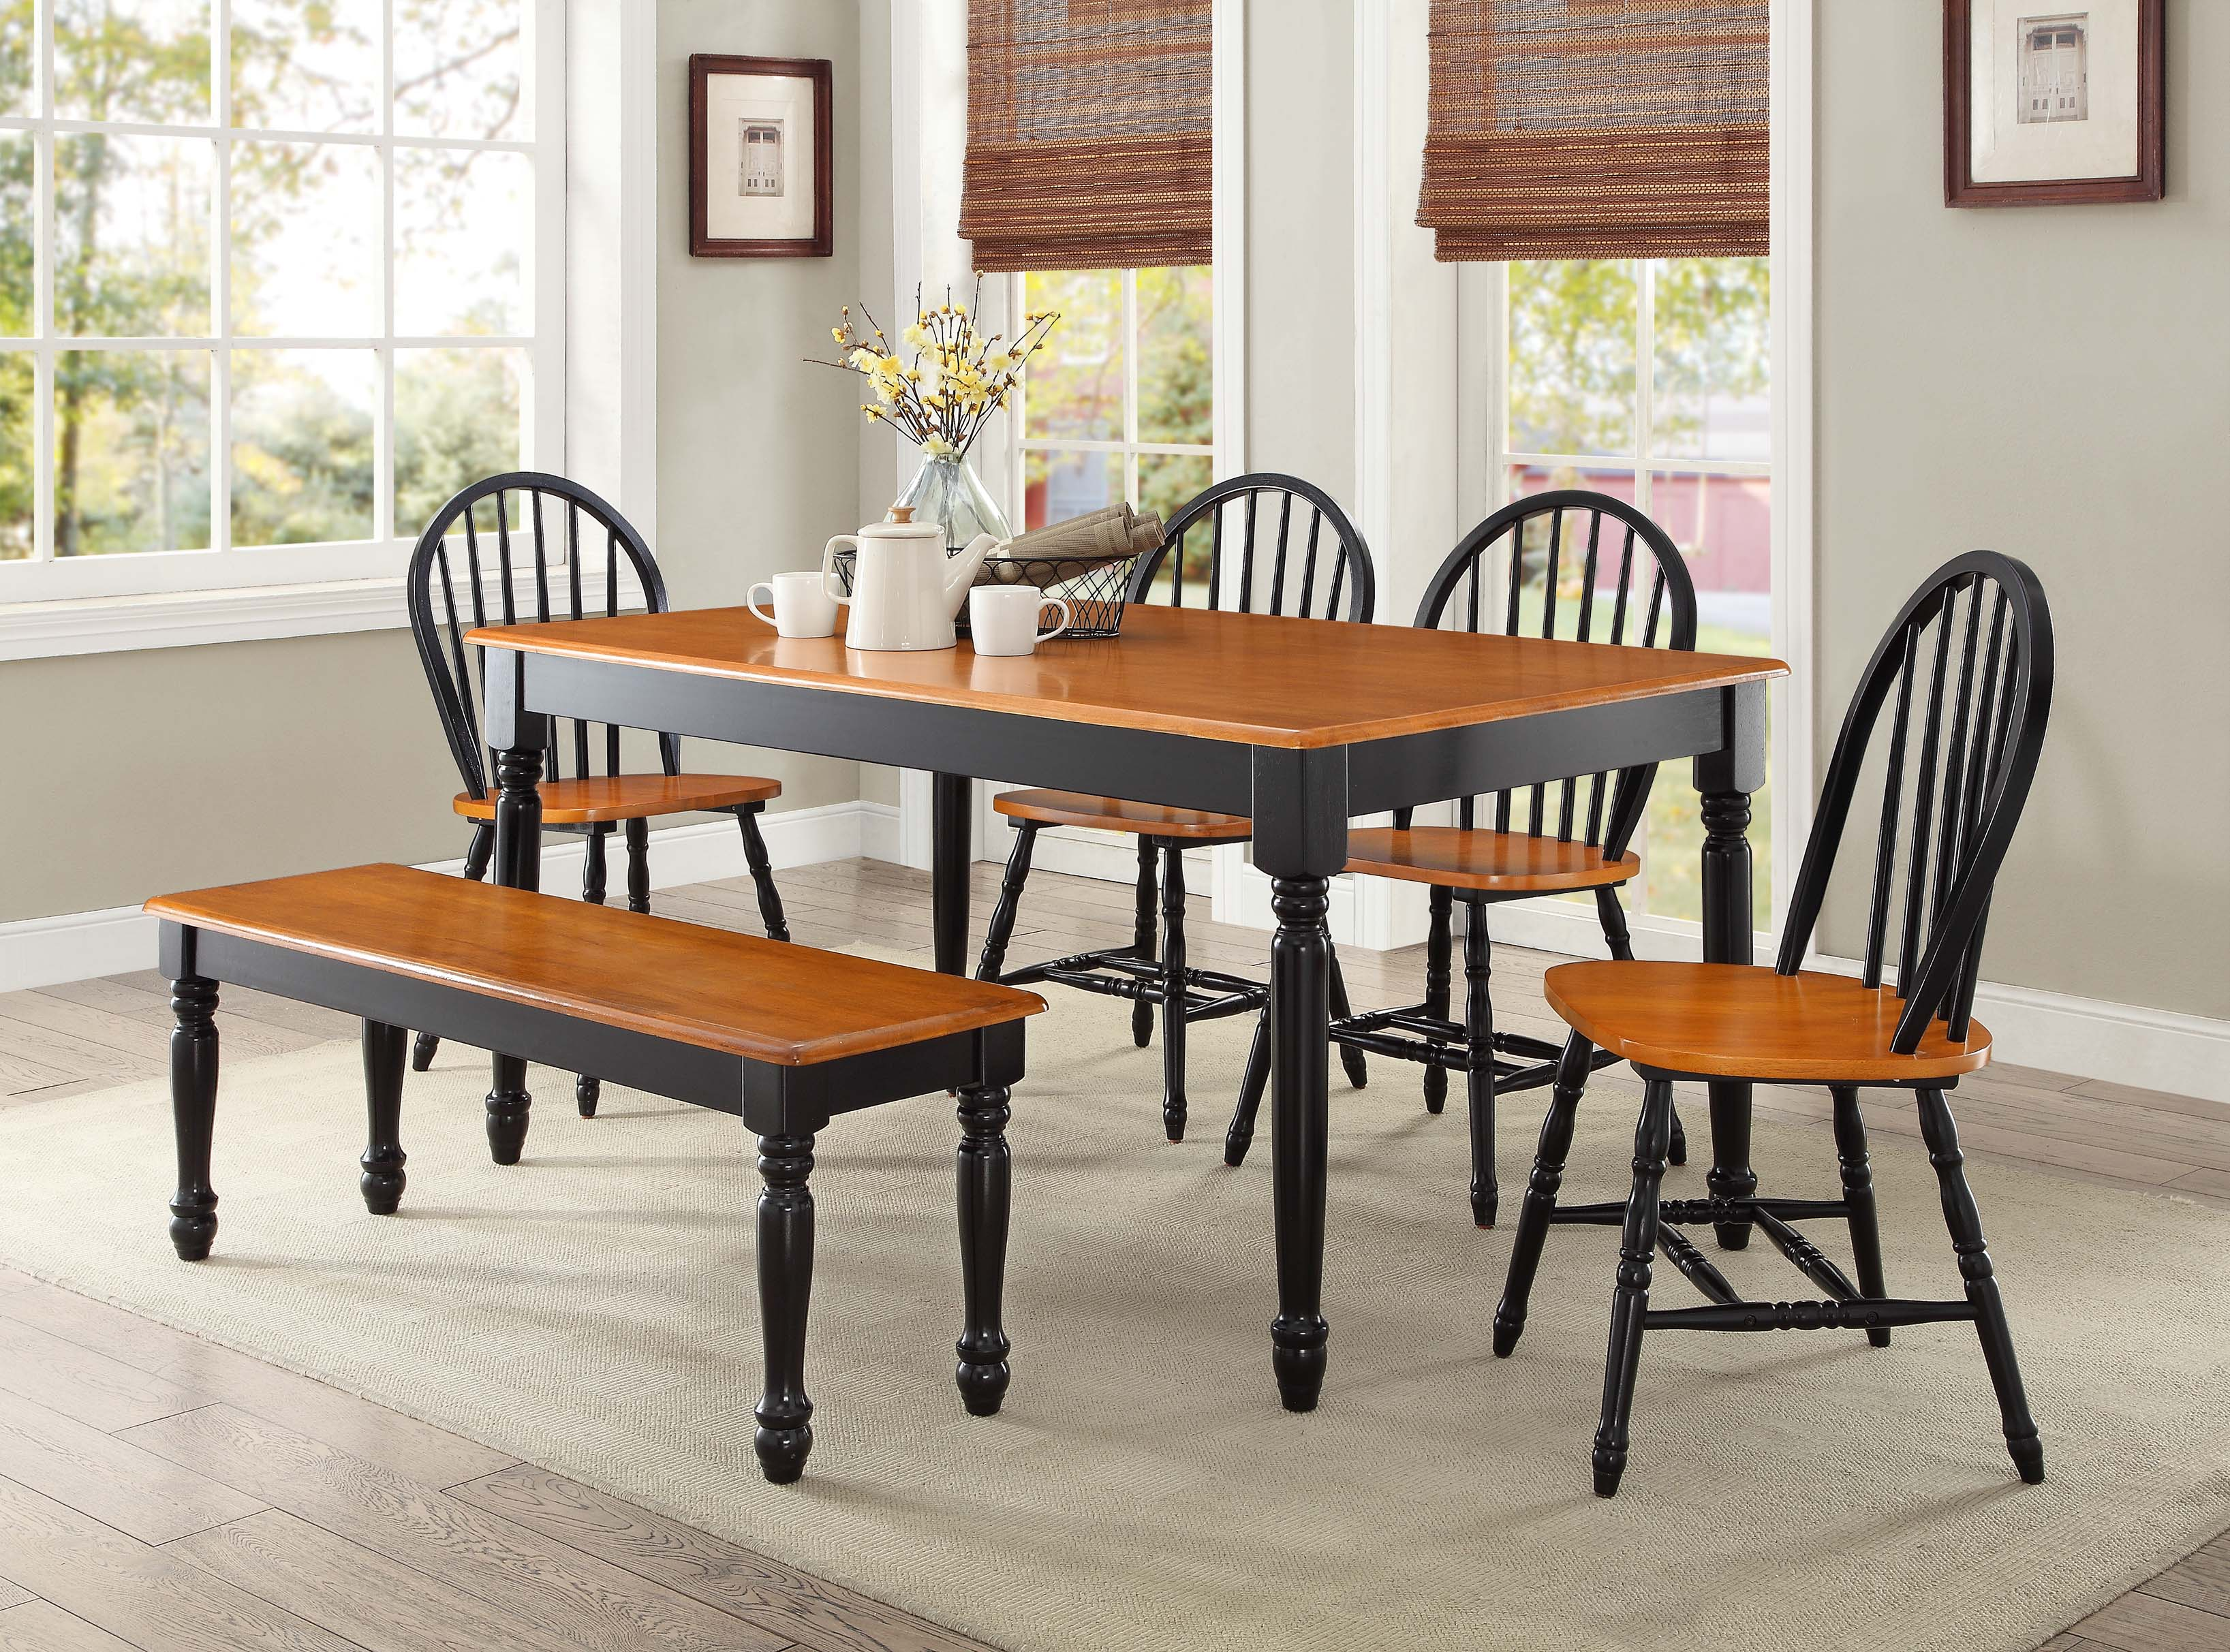 Dining Room Tables kitchen & dining furniture - walmart